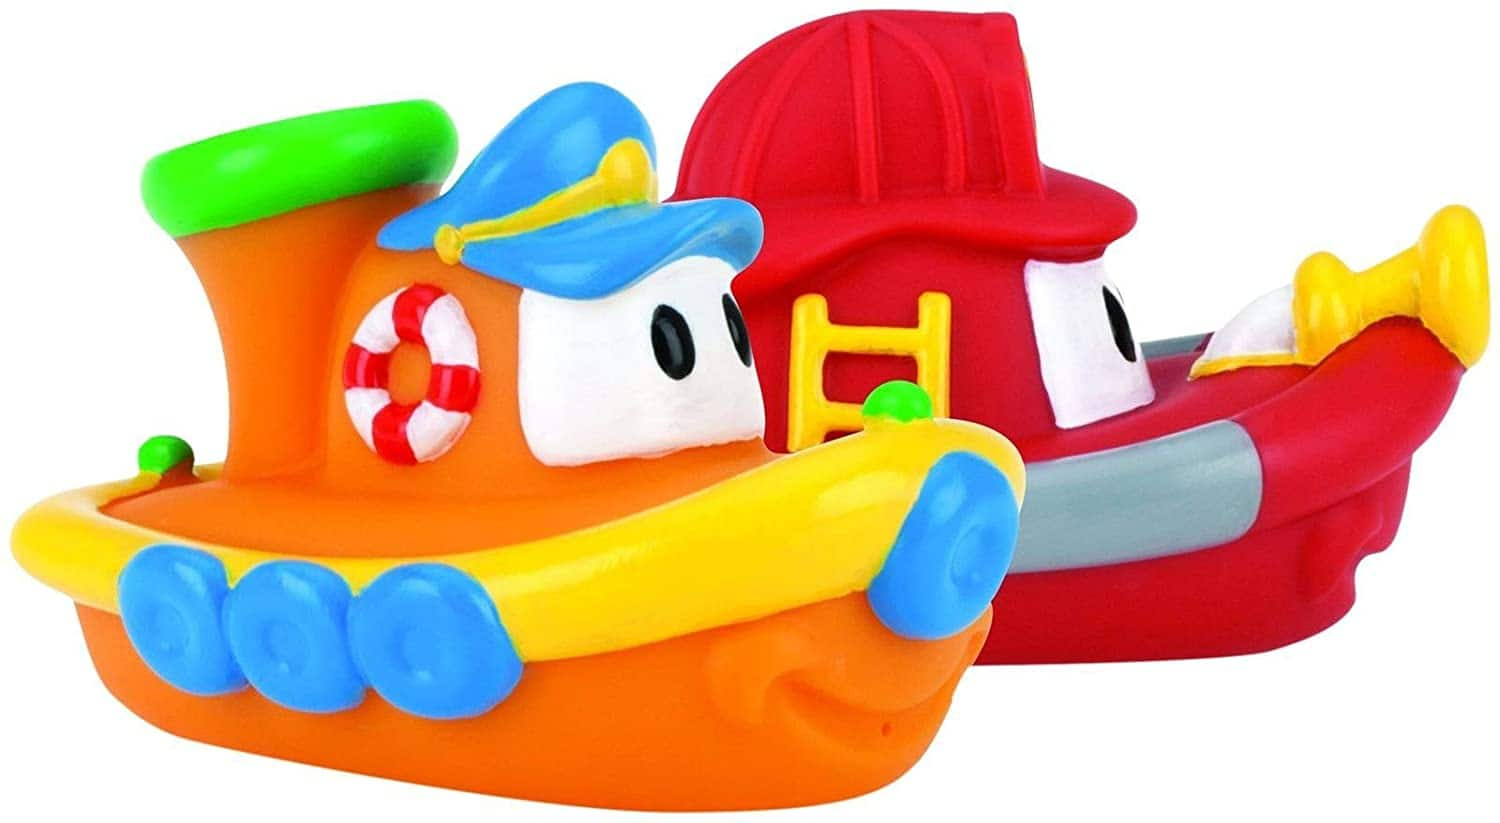 2-Pack Nuby Tub Tugs Floating Boat Bath Toys $4.75 + Free Shipping w/ Prime or $25+